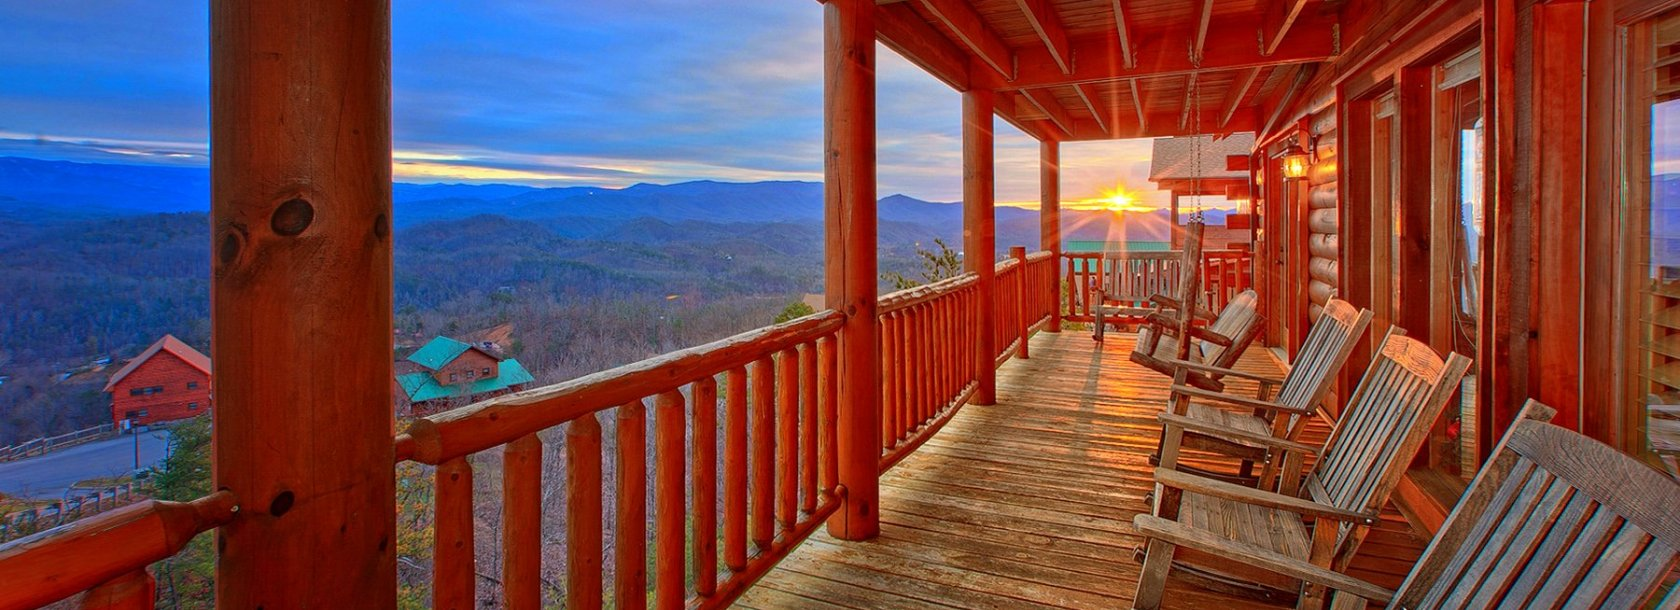 Majestic Mountain Vacations in Pigeon Forge, TN - Tennessee Vacation